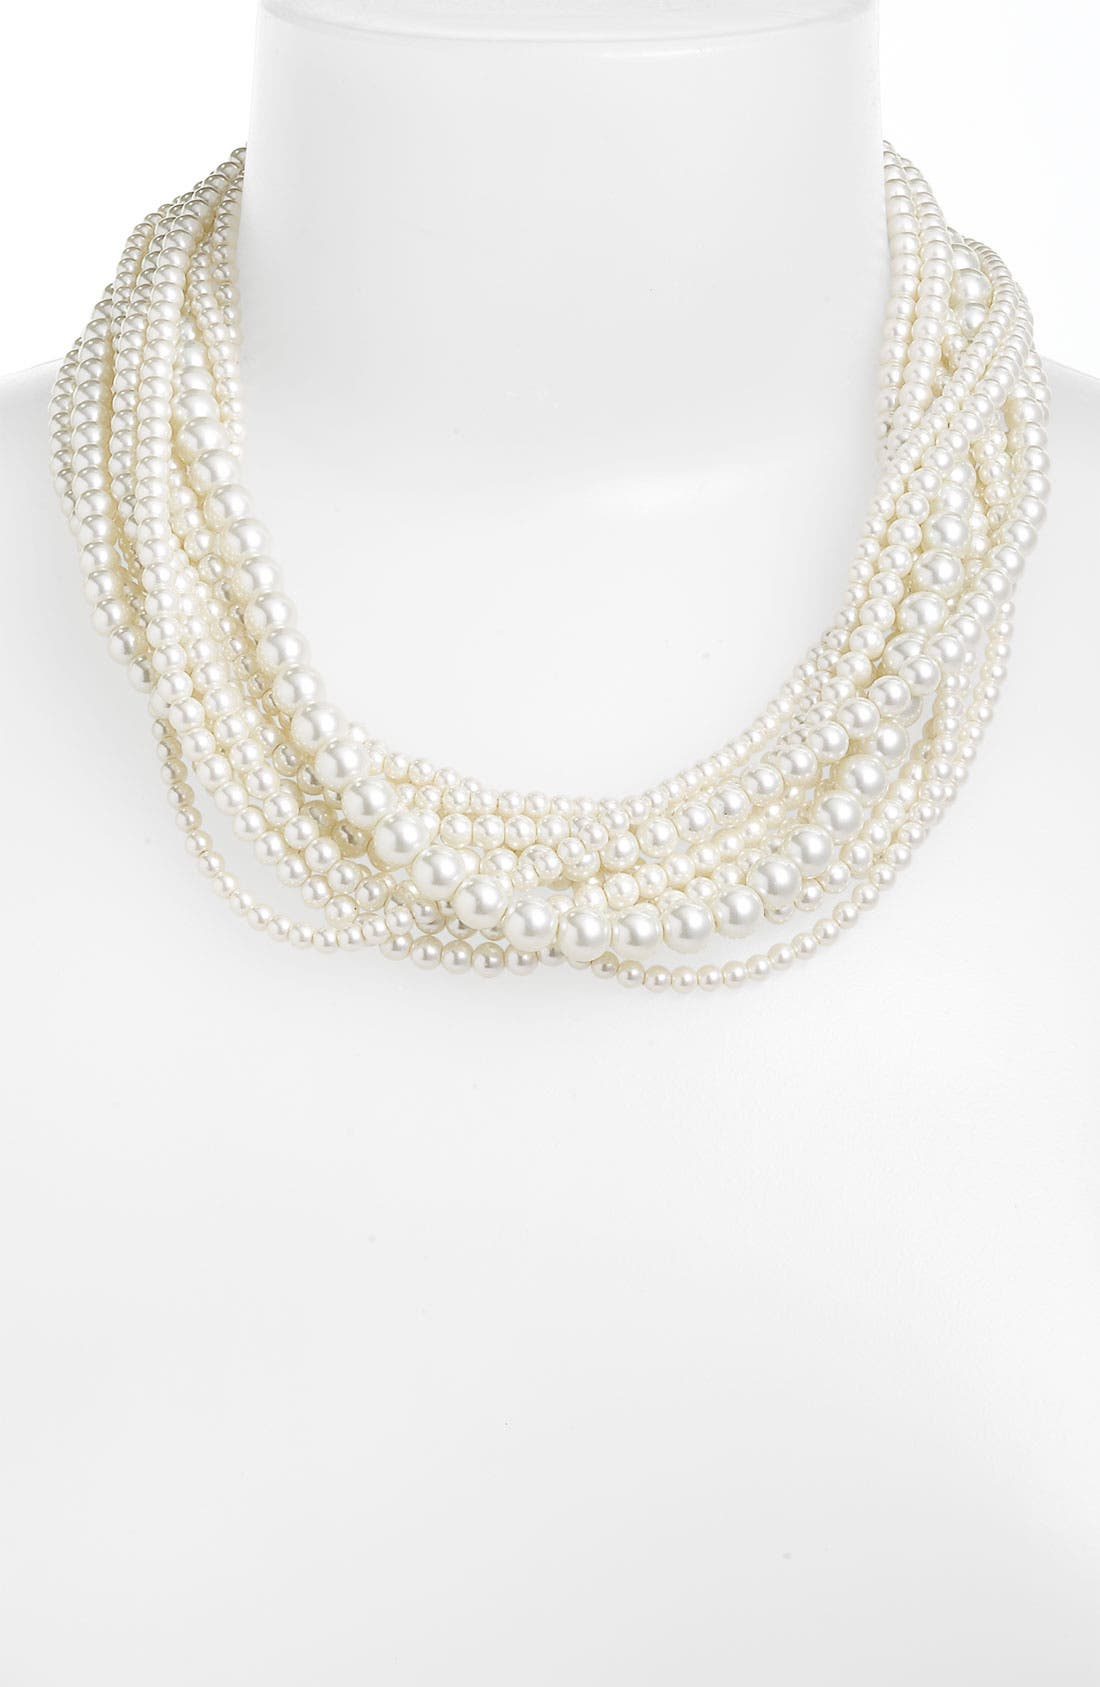 Main Image - Givenchy Faux Pearl Multistrand Necklace